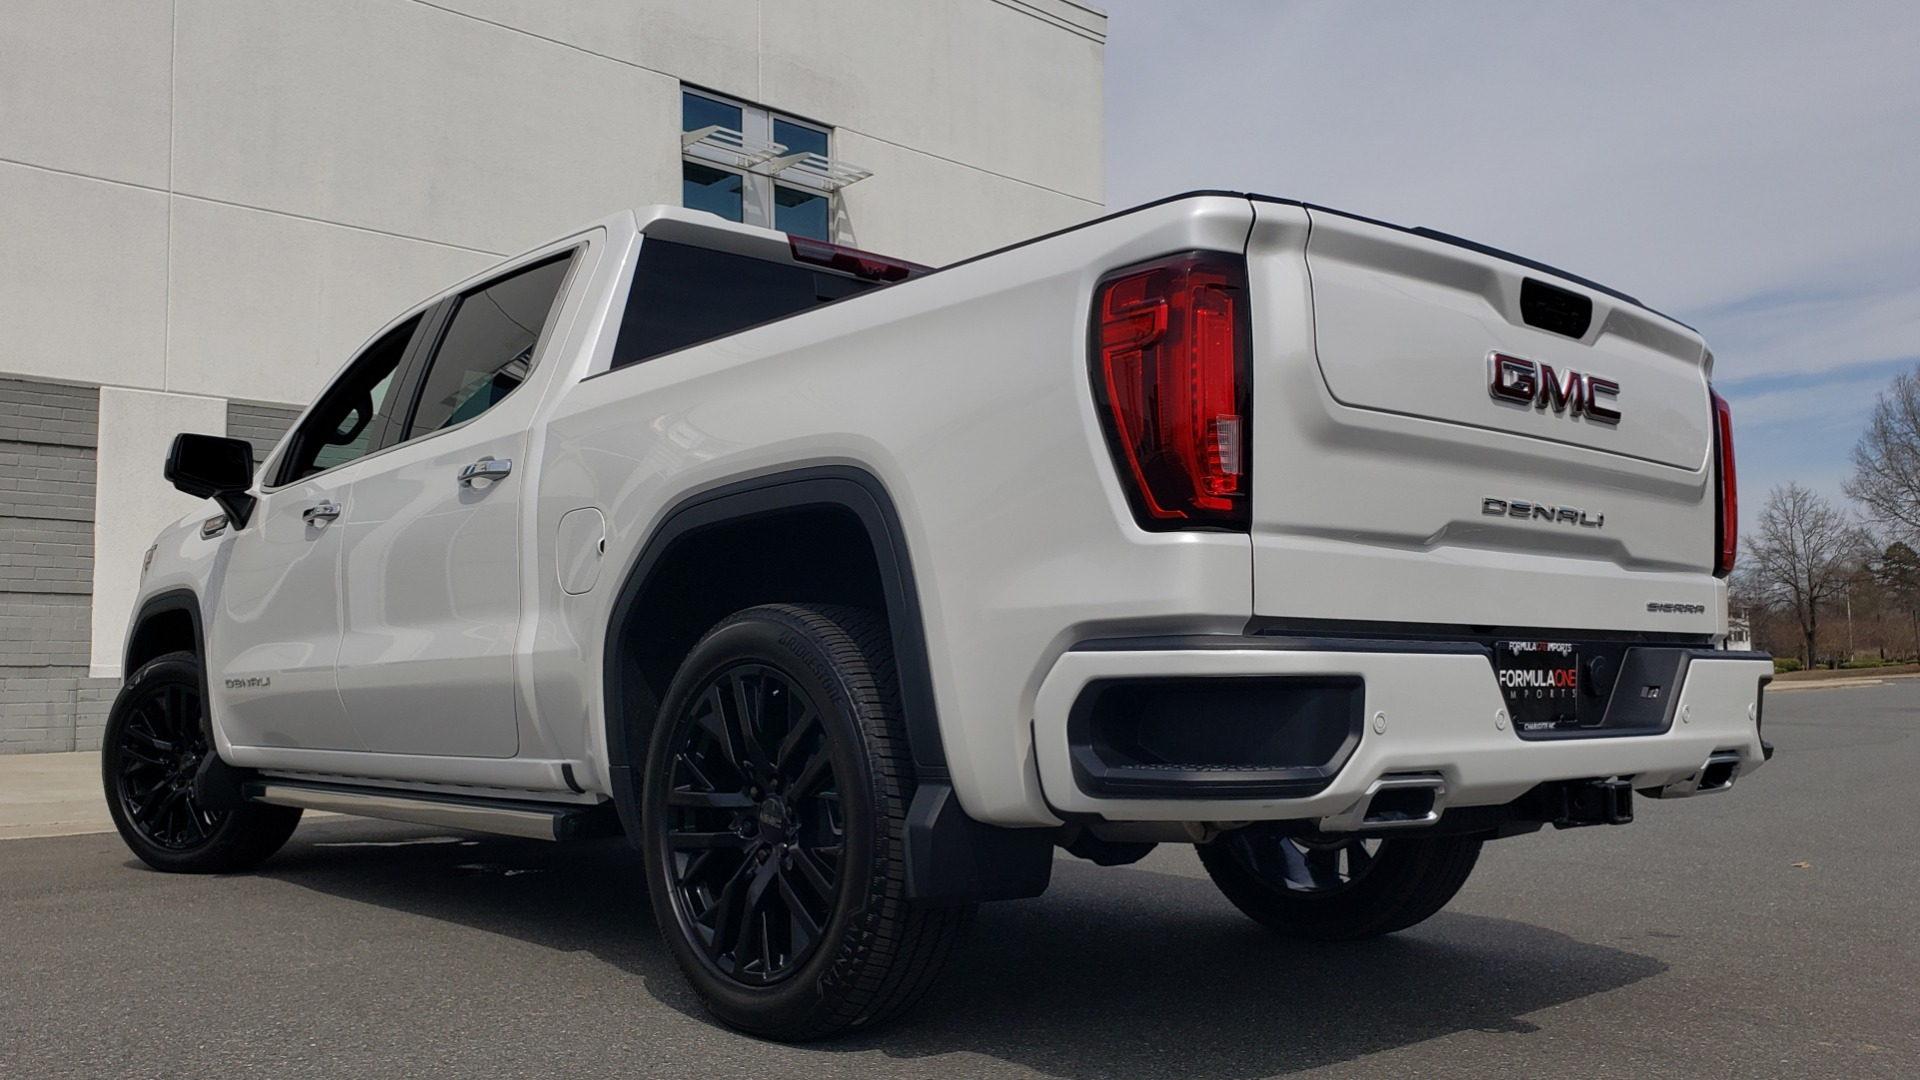 Used 2020 GMC SIERRA 1500 DENALI 4X4 CREWCAB 6.2L V8 / TECH / NAV / SUNROOF / DRVR ALERT II for sale Sold at Formula Imports in Charlotte NC 28227 2